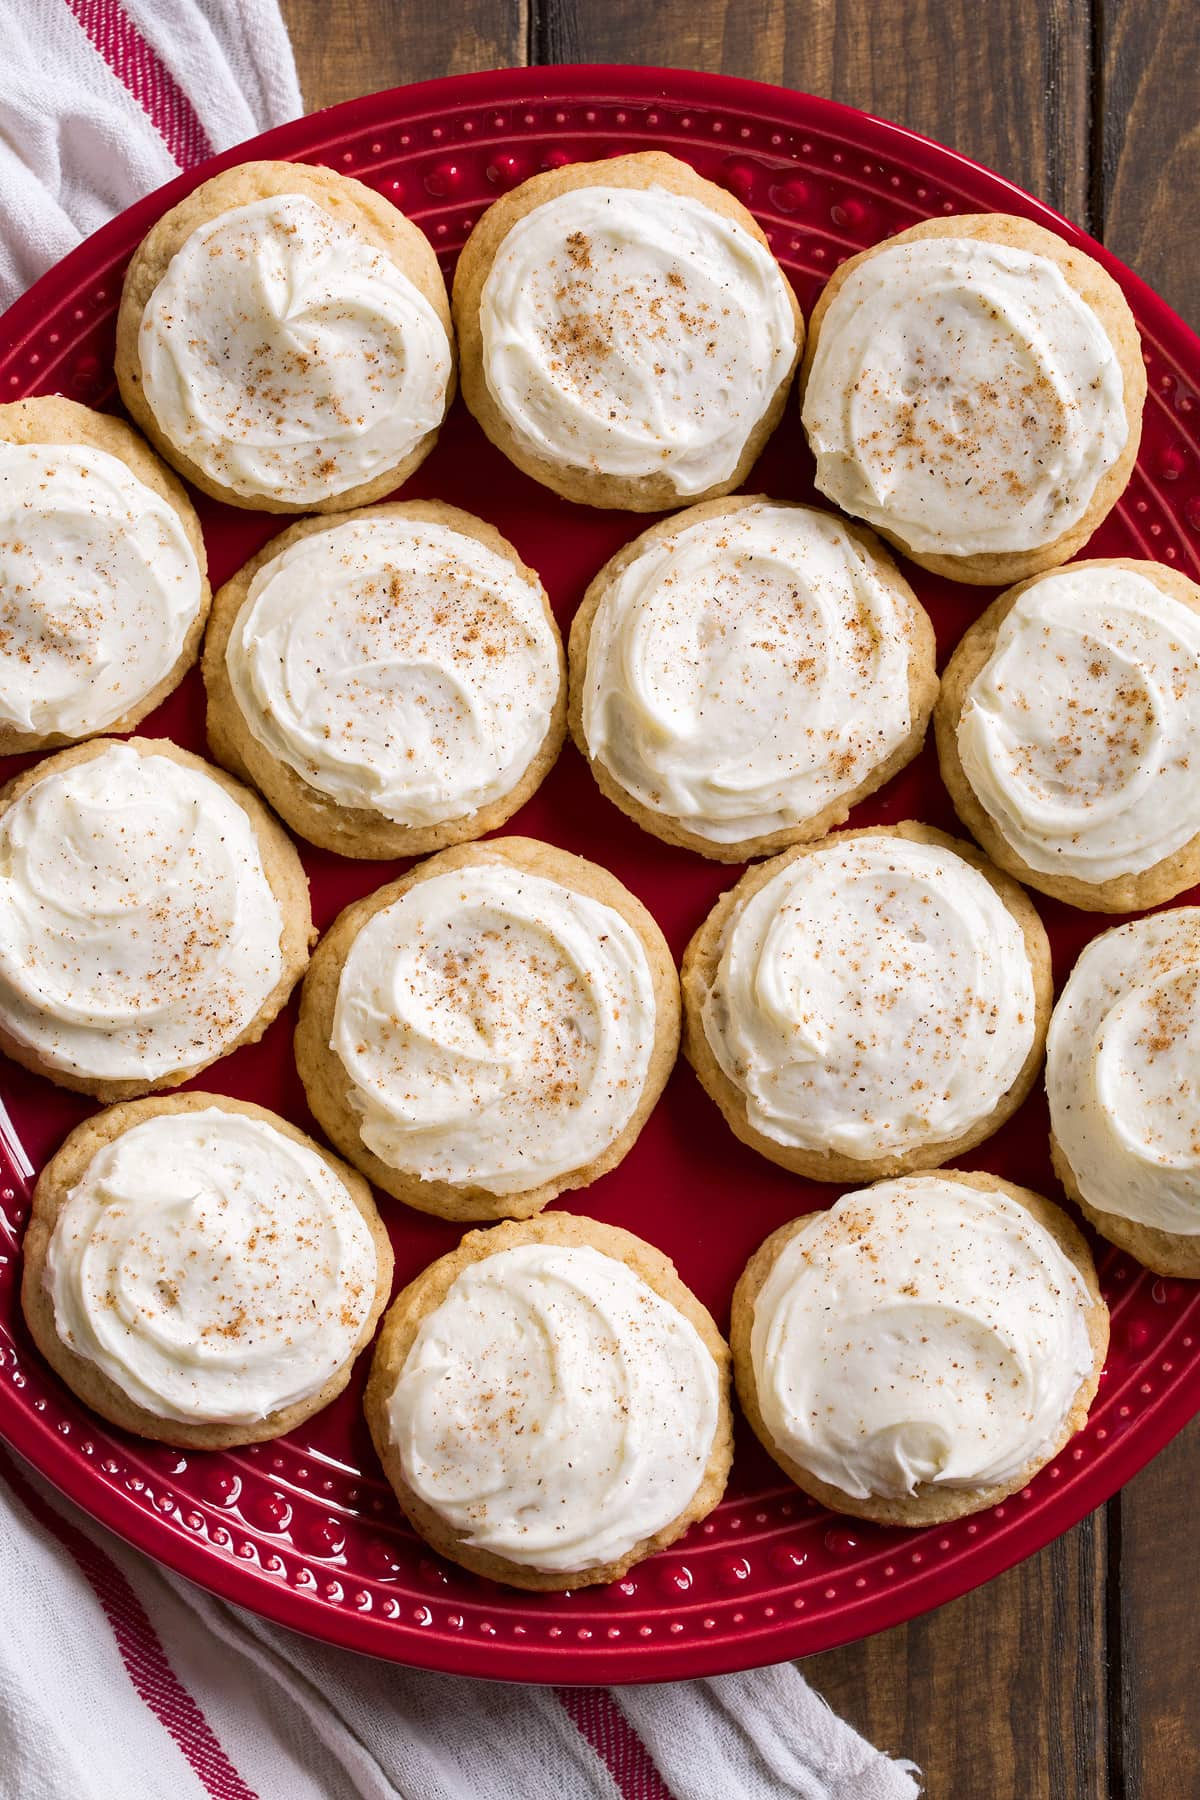 Red plate full of 14 frosted eggnog cookies.